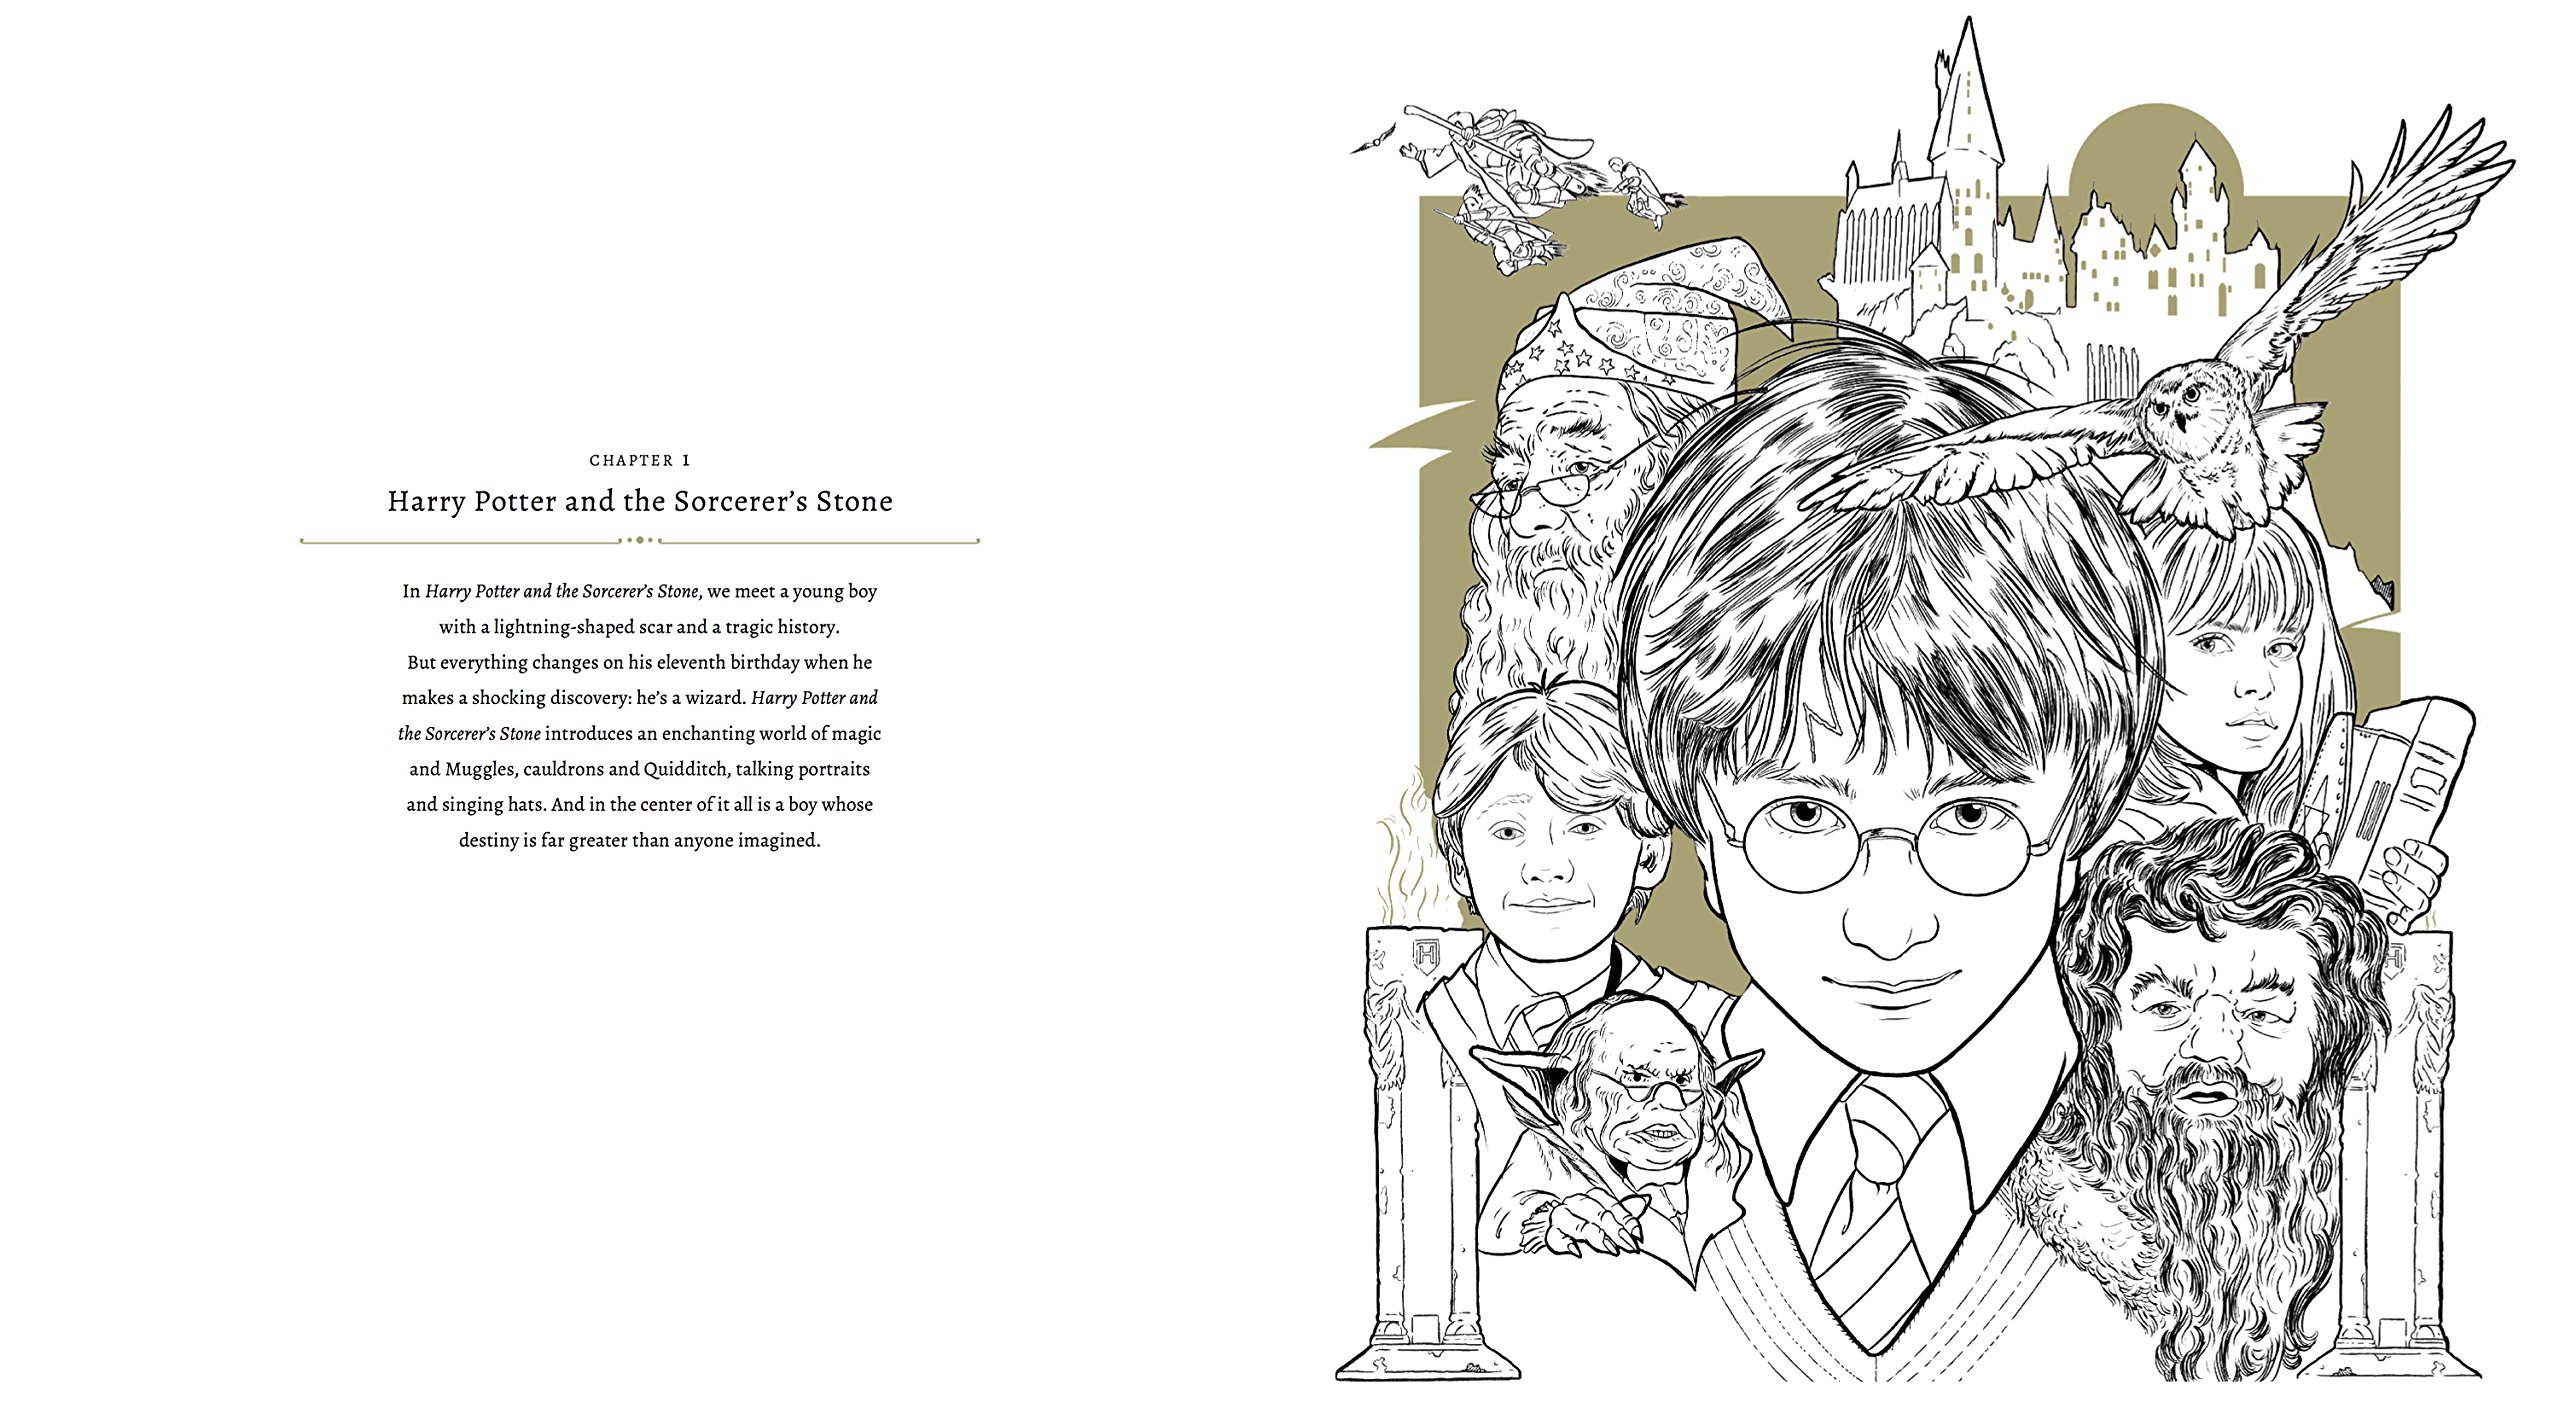 Harry potter a cinematic gallery colouring books amazon co uk j m dragunas 9781785657405 books